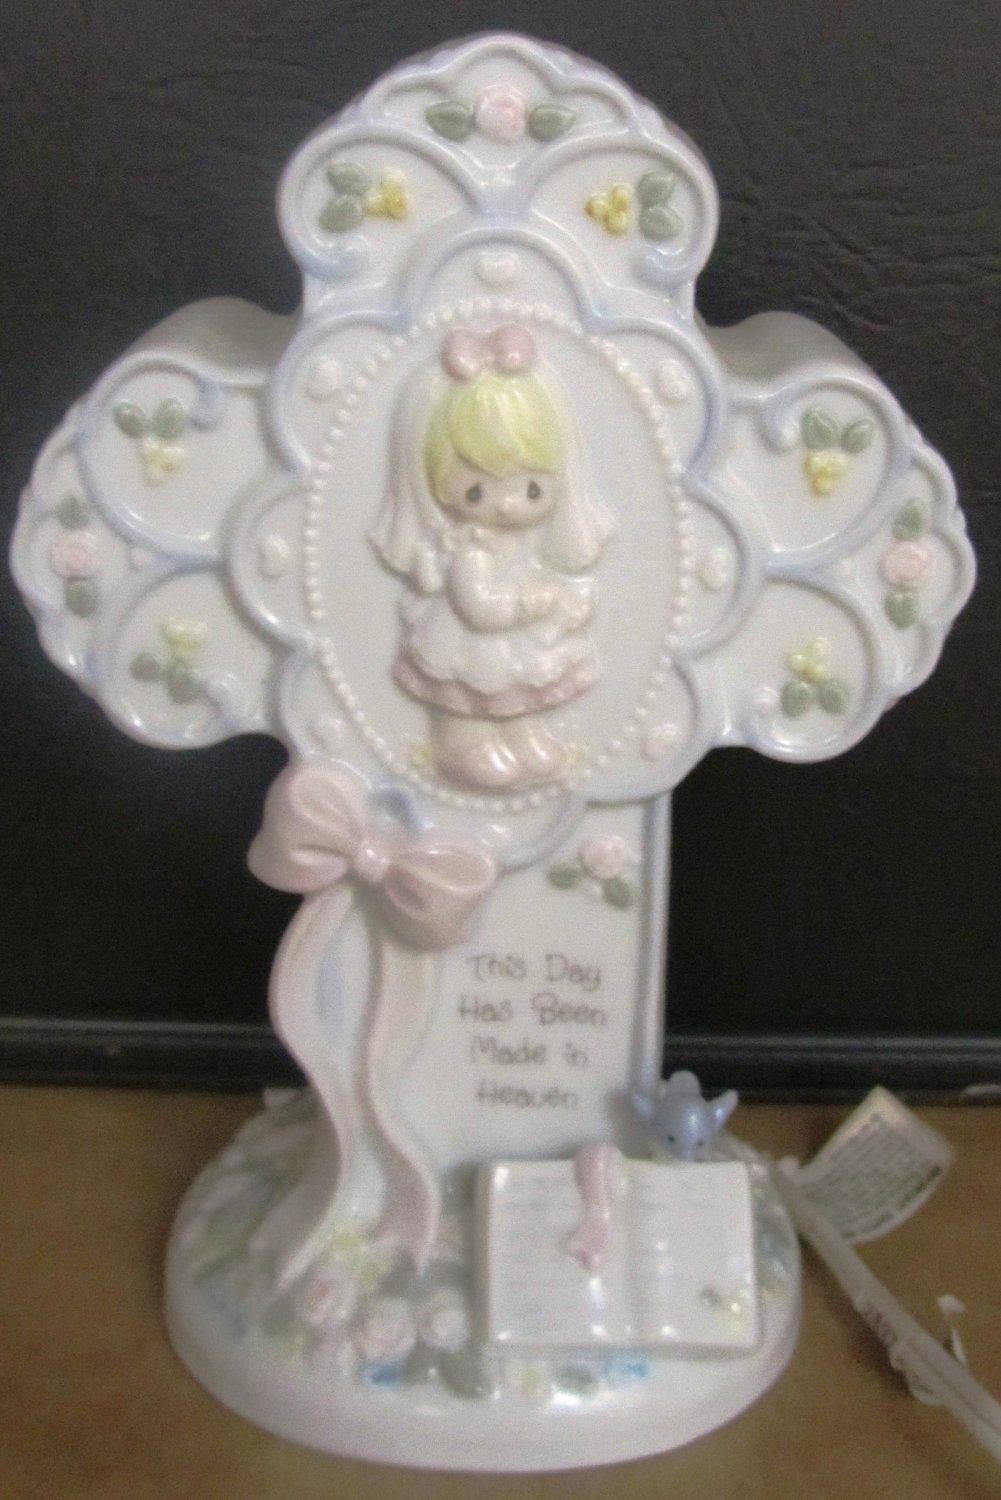 PRECIOUS MOMENTS CROSS PORCELAIN NIGHT LIGHT 93 THIS DAY HAS BEEN MADE IN HEAVEN